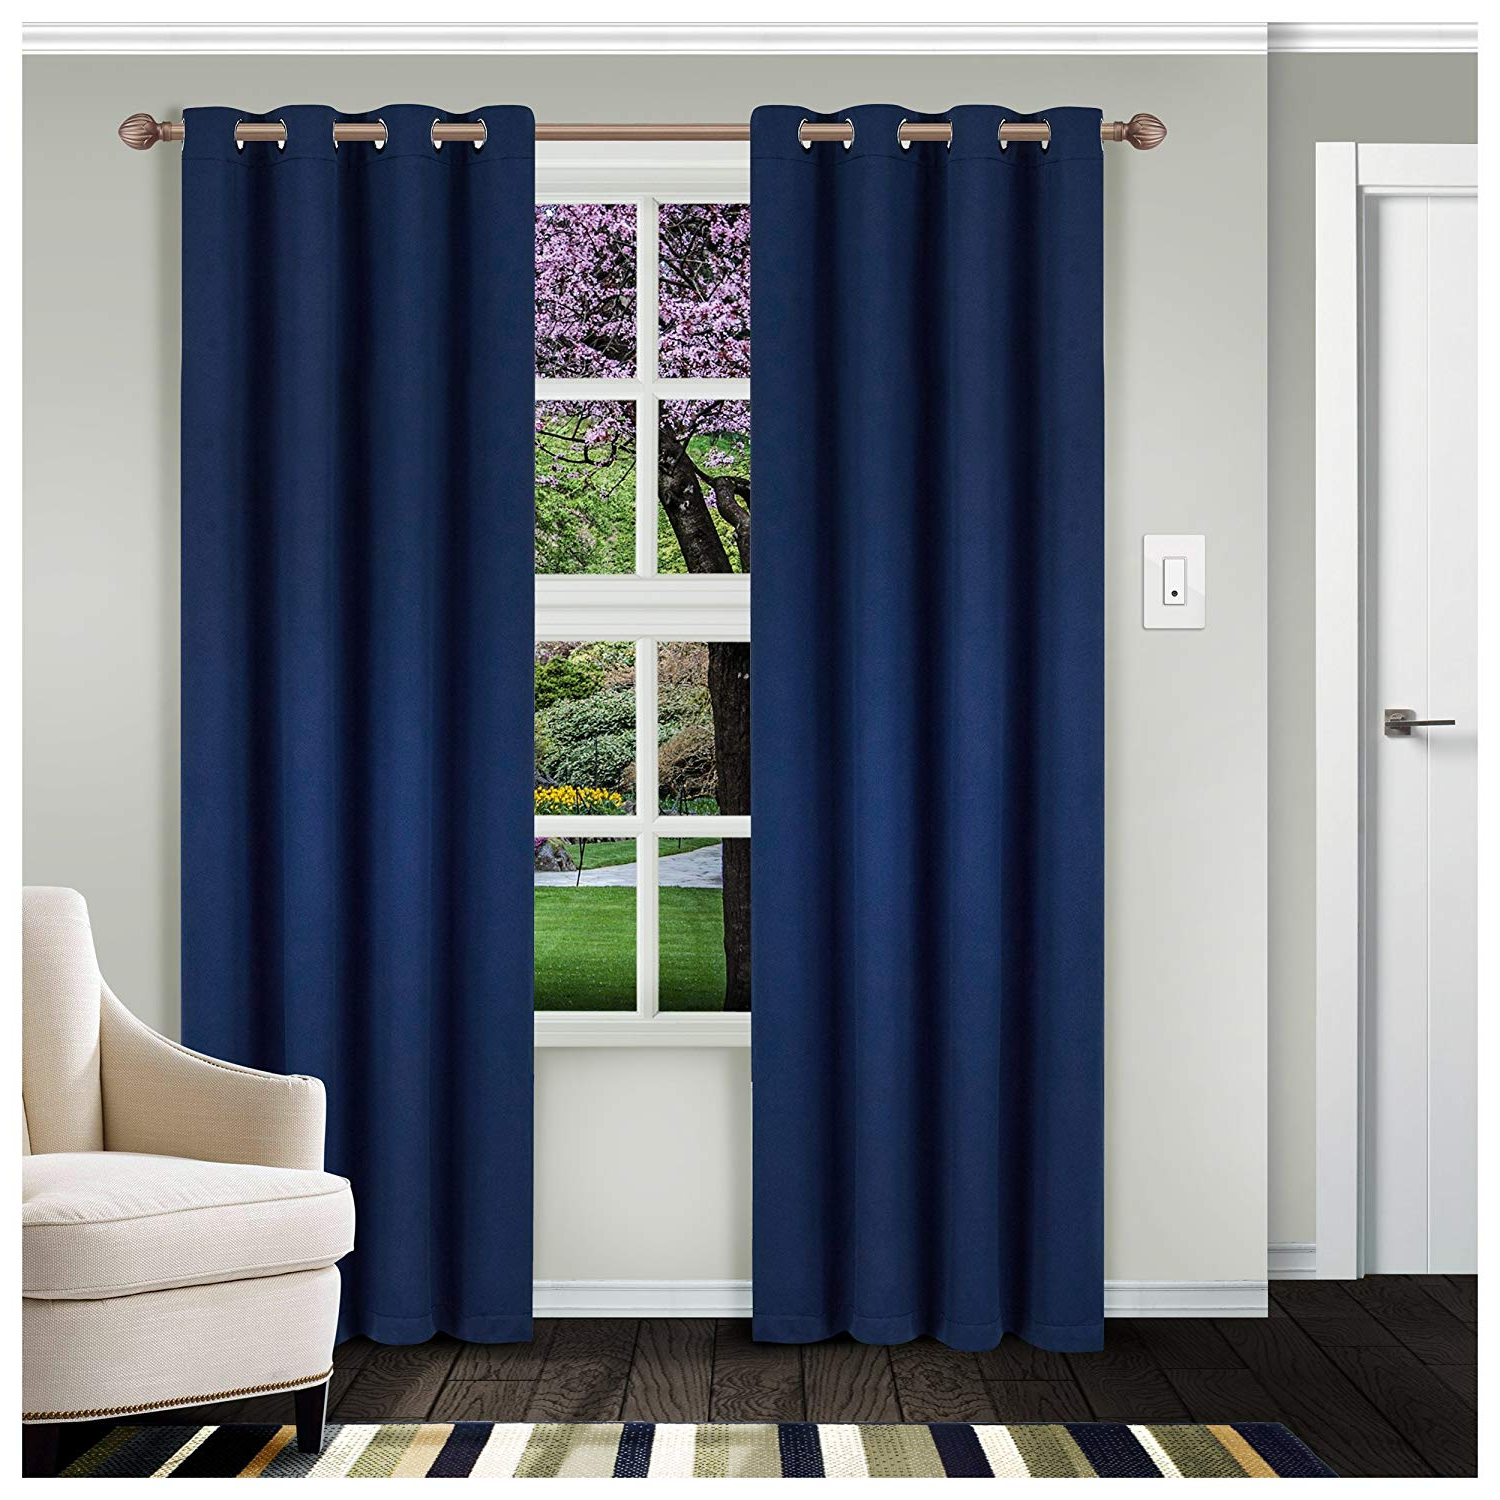 Most Recently Released Solid Thermal Insulated Blackout Curtain Panel Pairs Regarding Superior Solid Blackout Curtain Set Of 2, Thermal Insulated Panel Pair With Grommet Top Header, Elegant Solid Room Darkening Drapes, Available In (View 3 of 20)